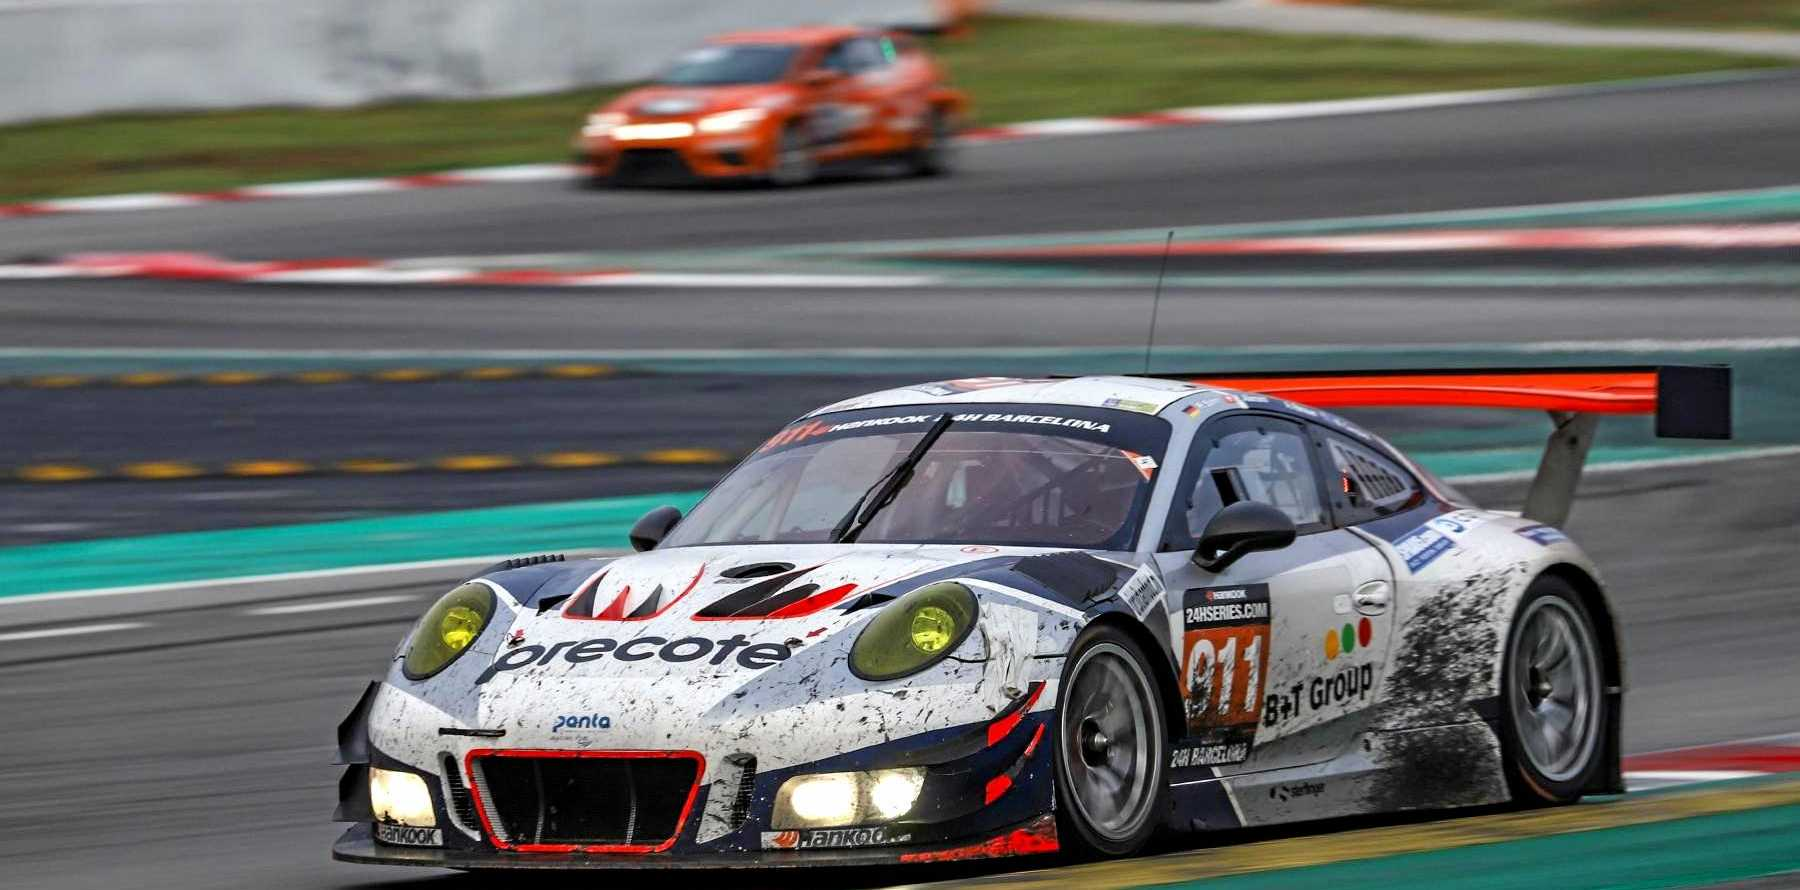 FAST: Warwick driver Matt Campbell on the way to a win in the 24 Hour Barcelona endurance race this year.